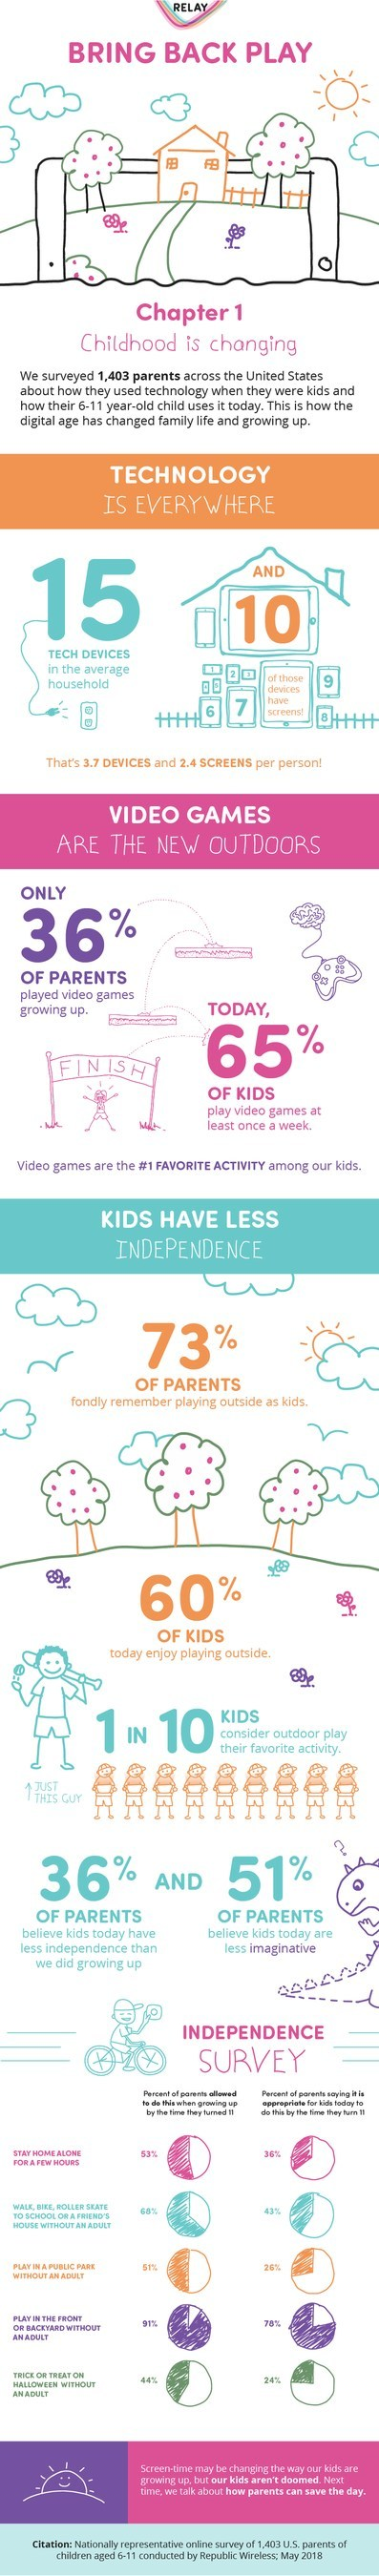 """Changing Childhood: """"Bring Back Play"""" Study From Relay Shows Family Life is Suffering from Screen Overload"""